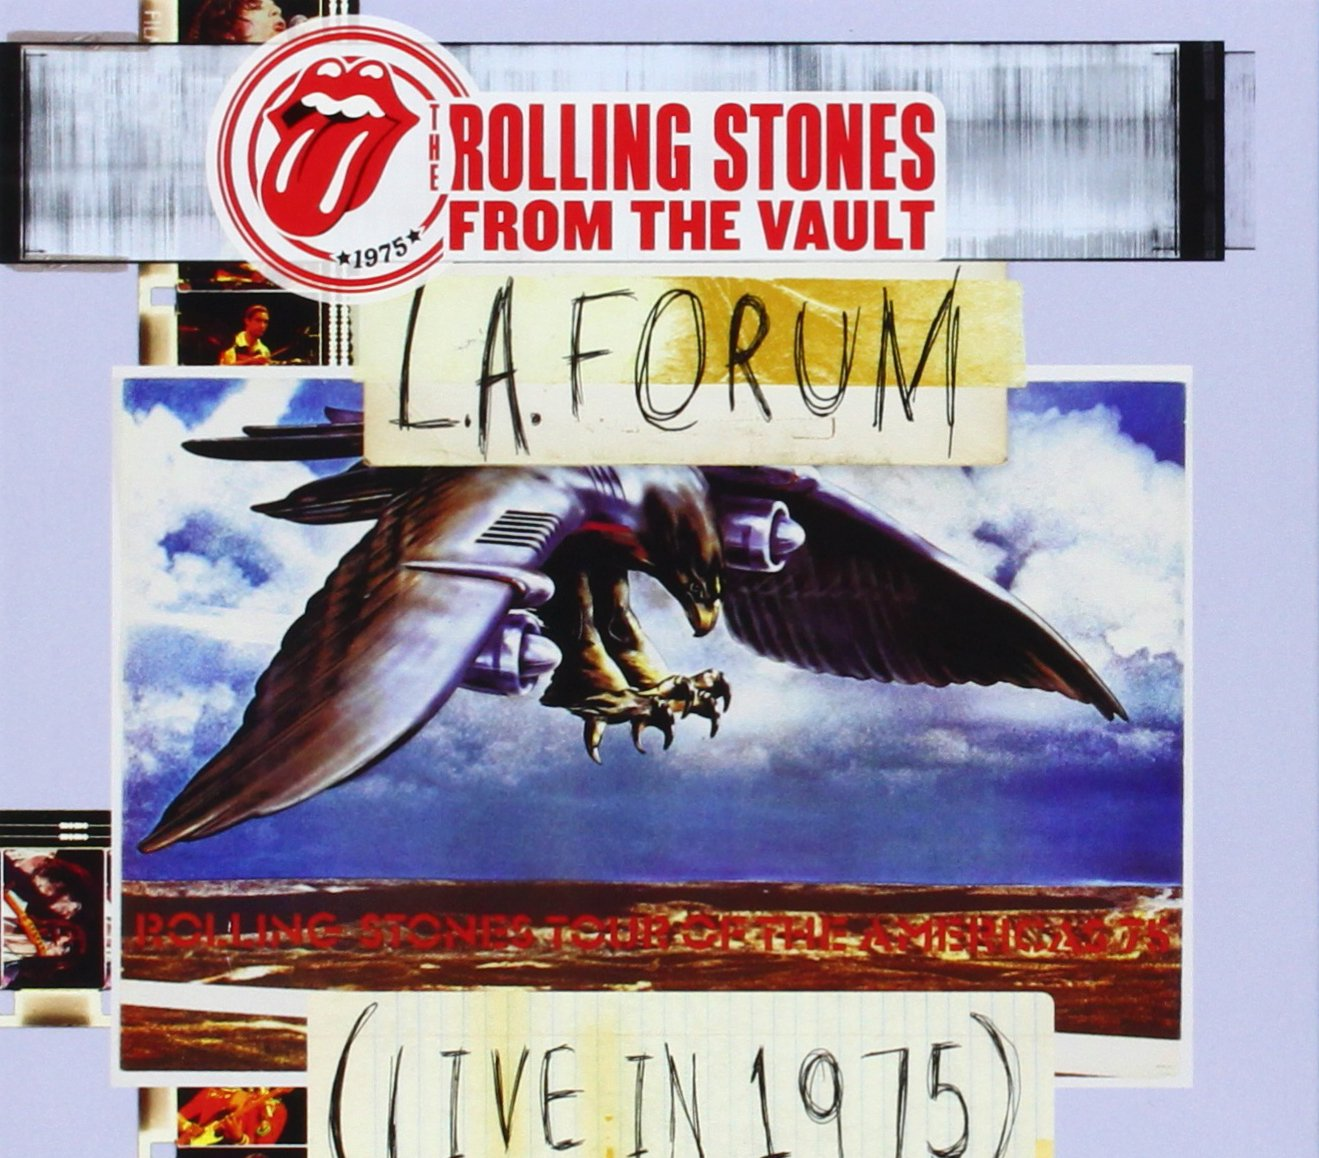 From The Vault - L.A. Forum (Live In 1975) [2 CD/DVD Combo] by CD